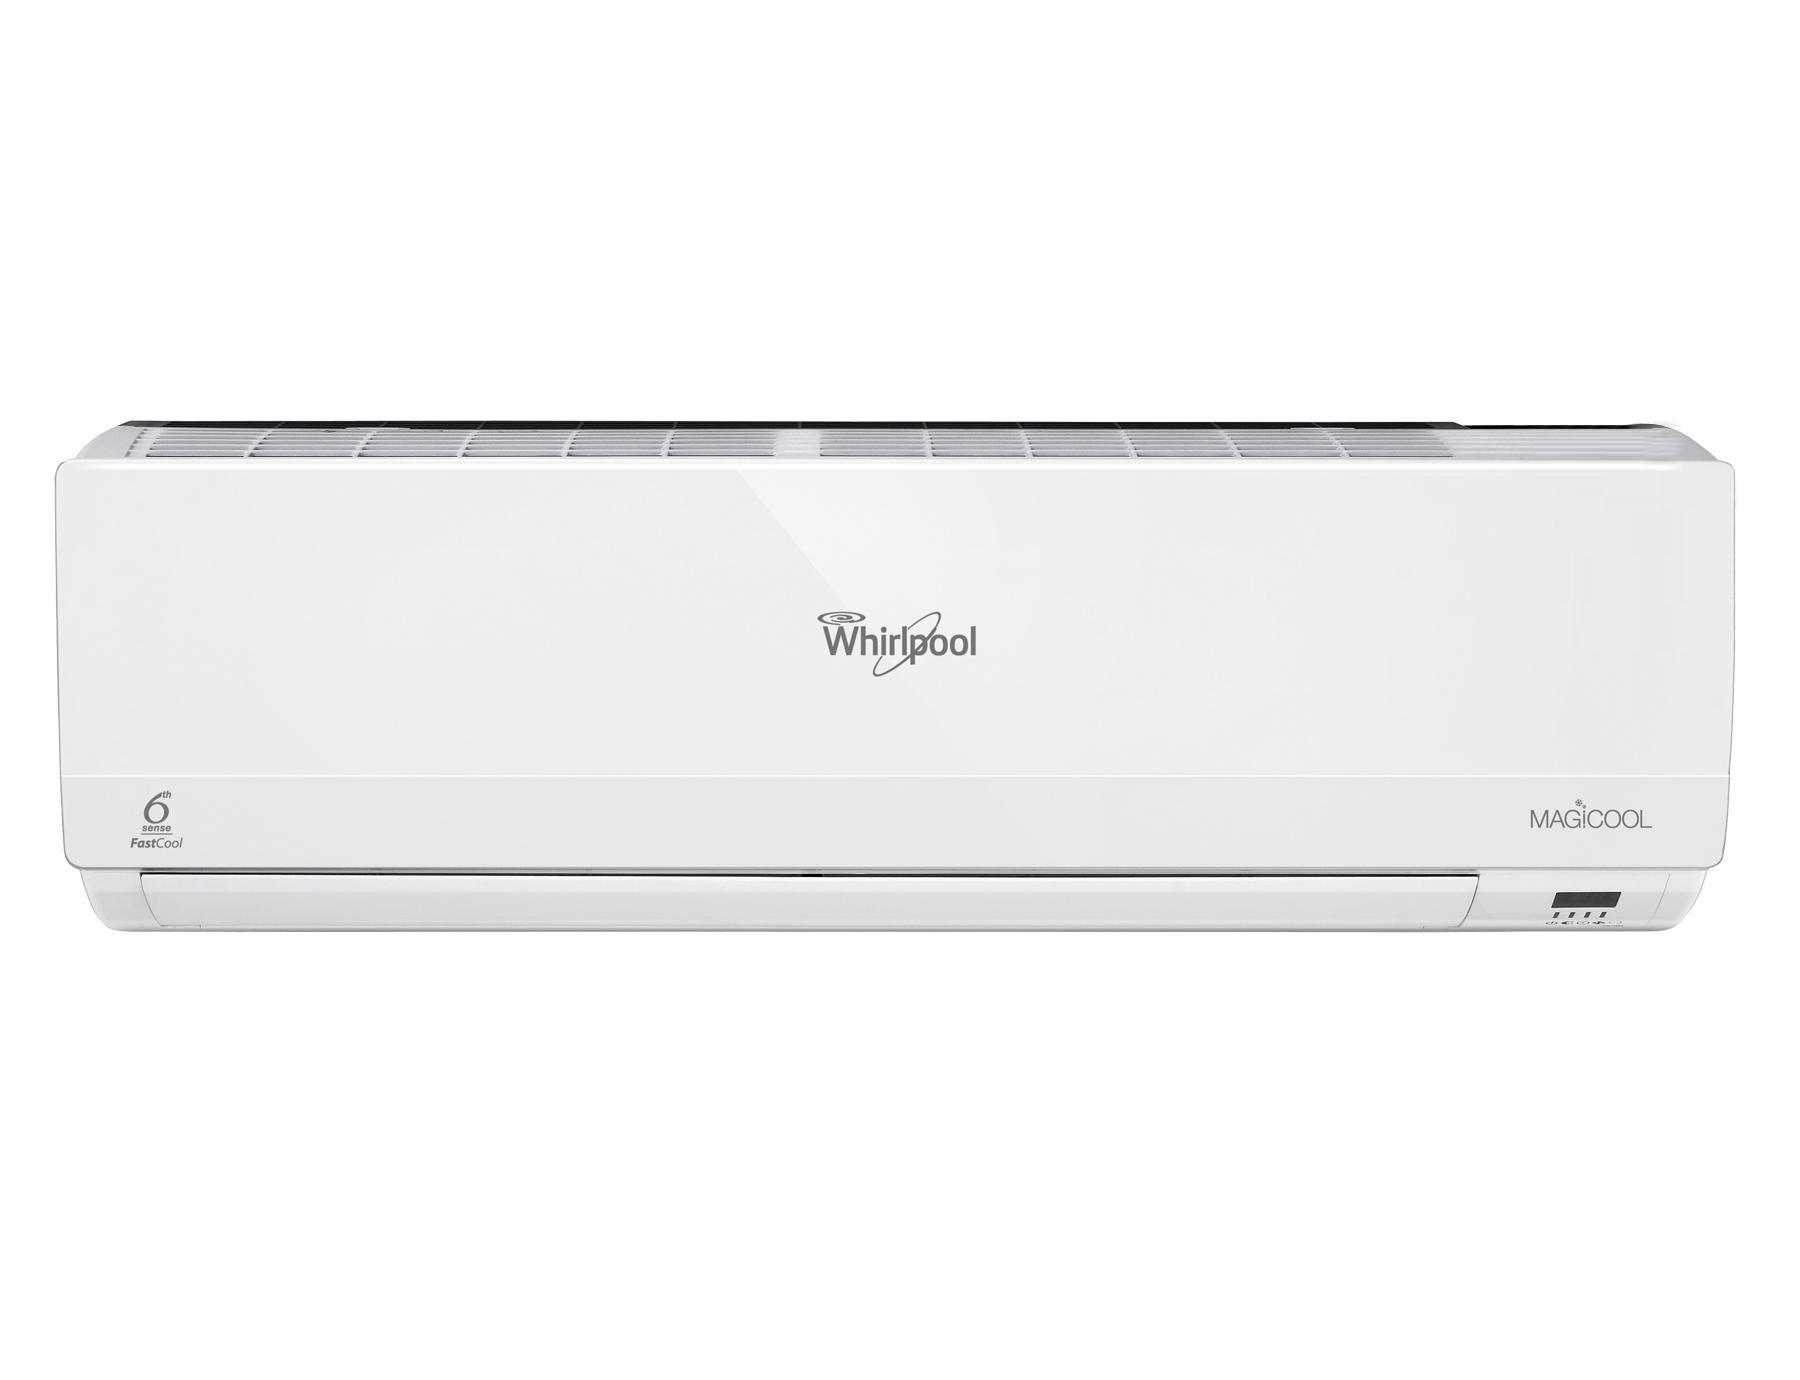 whirlpool service center in nesapakkam, whirlpool service center in nungambakkam, whirlpool service center in palavakkam, whirlpool service center in karapakkam, whirlpool service center in kattivakkam, whirlpool service center in k.k. nagar